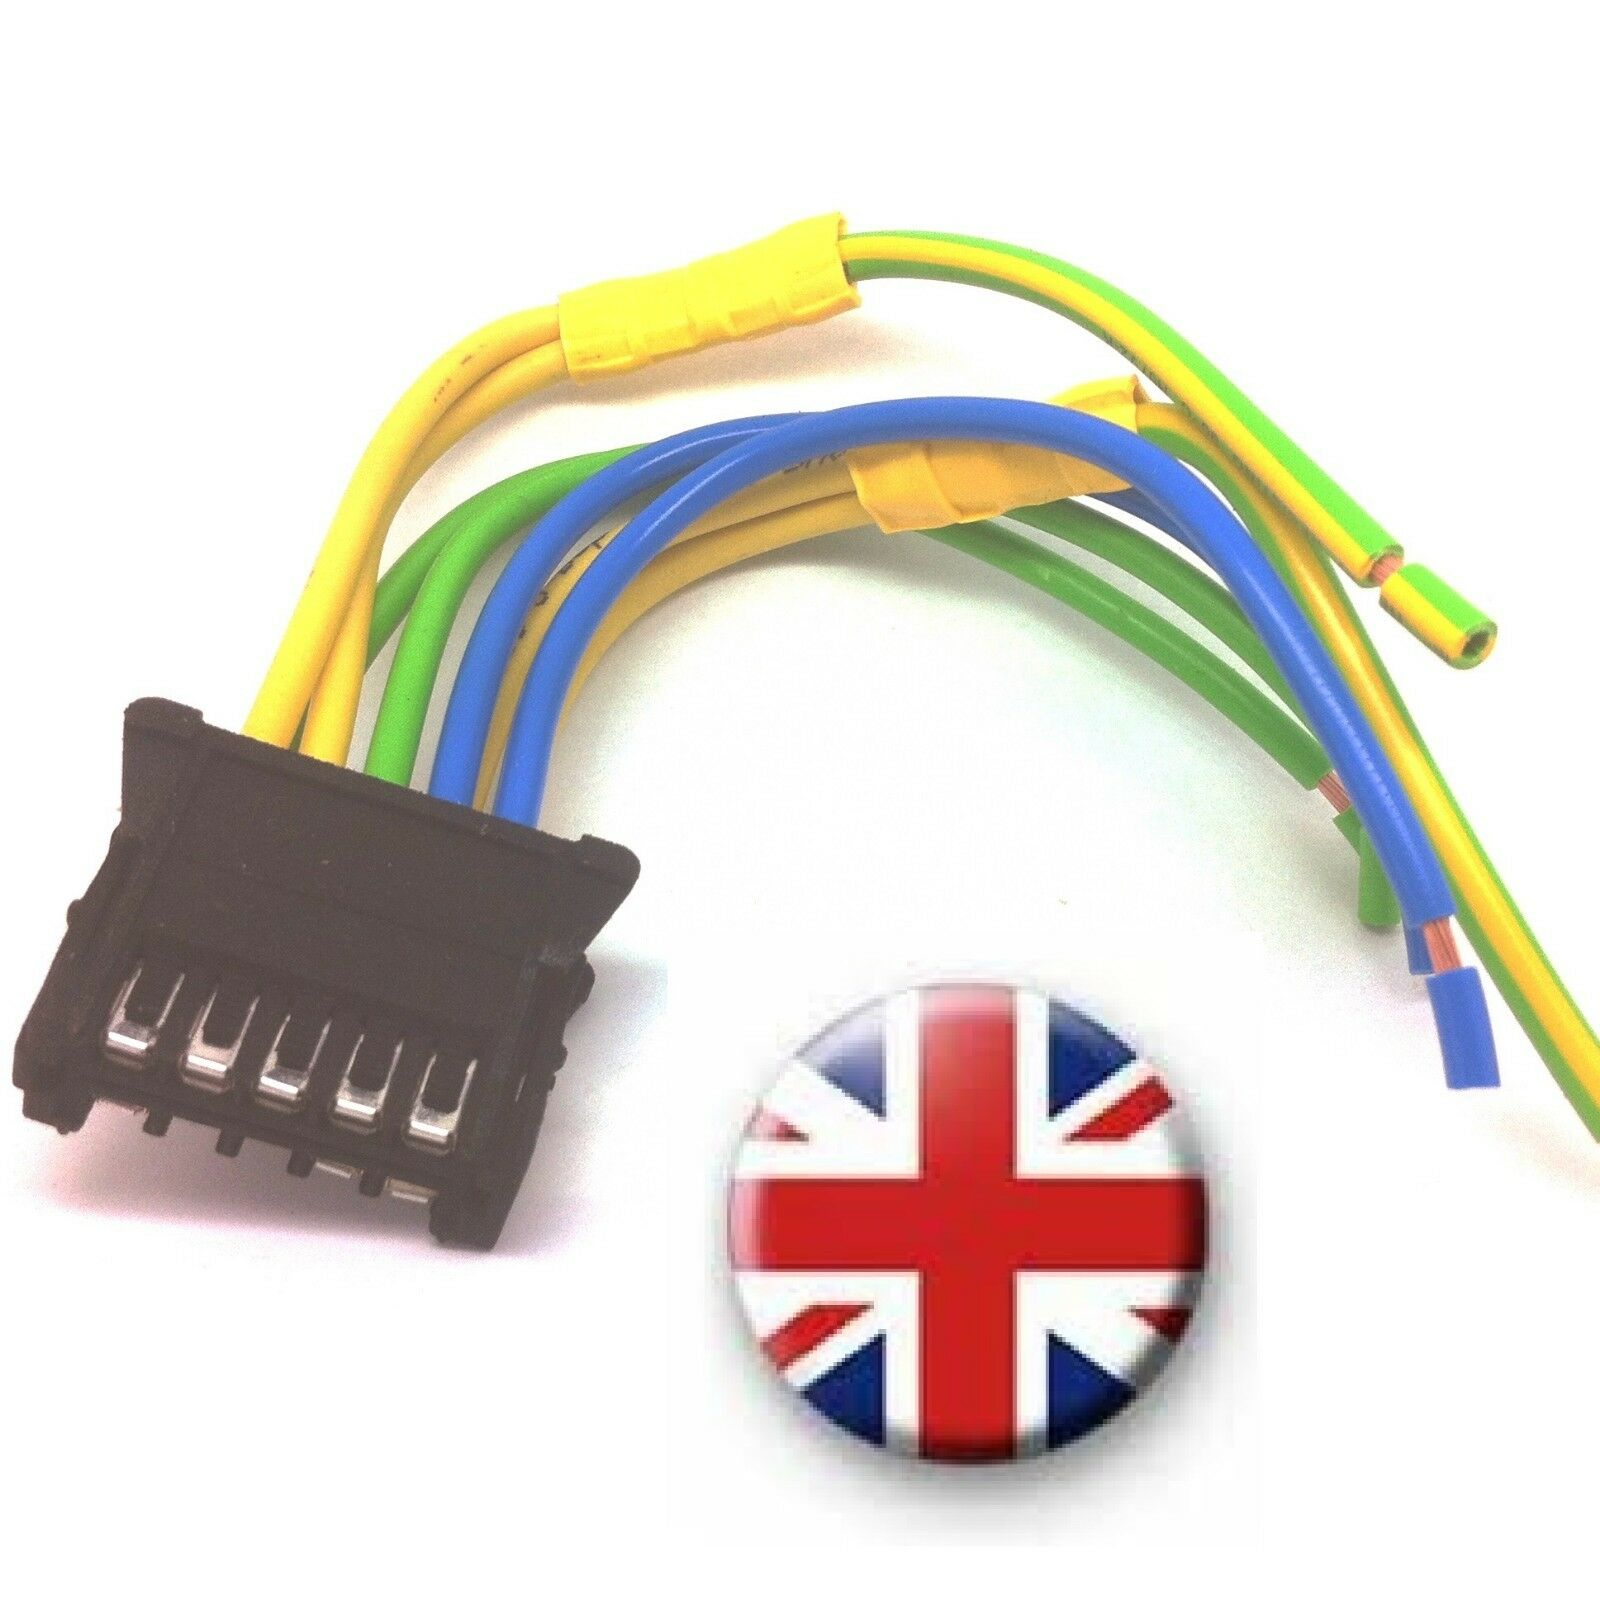 without CCH-CAR PJ Heater Blower Resistor Wiring Loom Harness Connector for Renault Megane 2 Scenic II